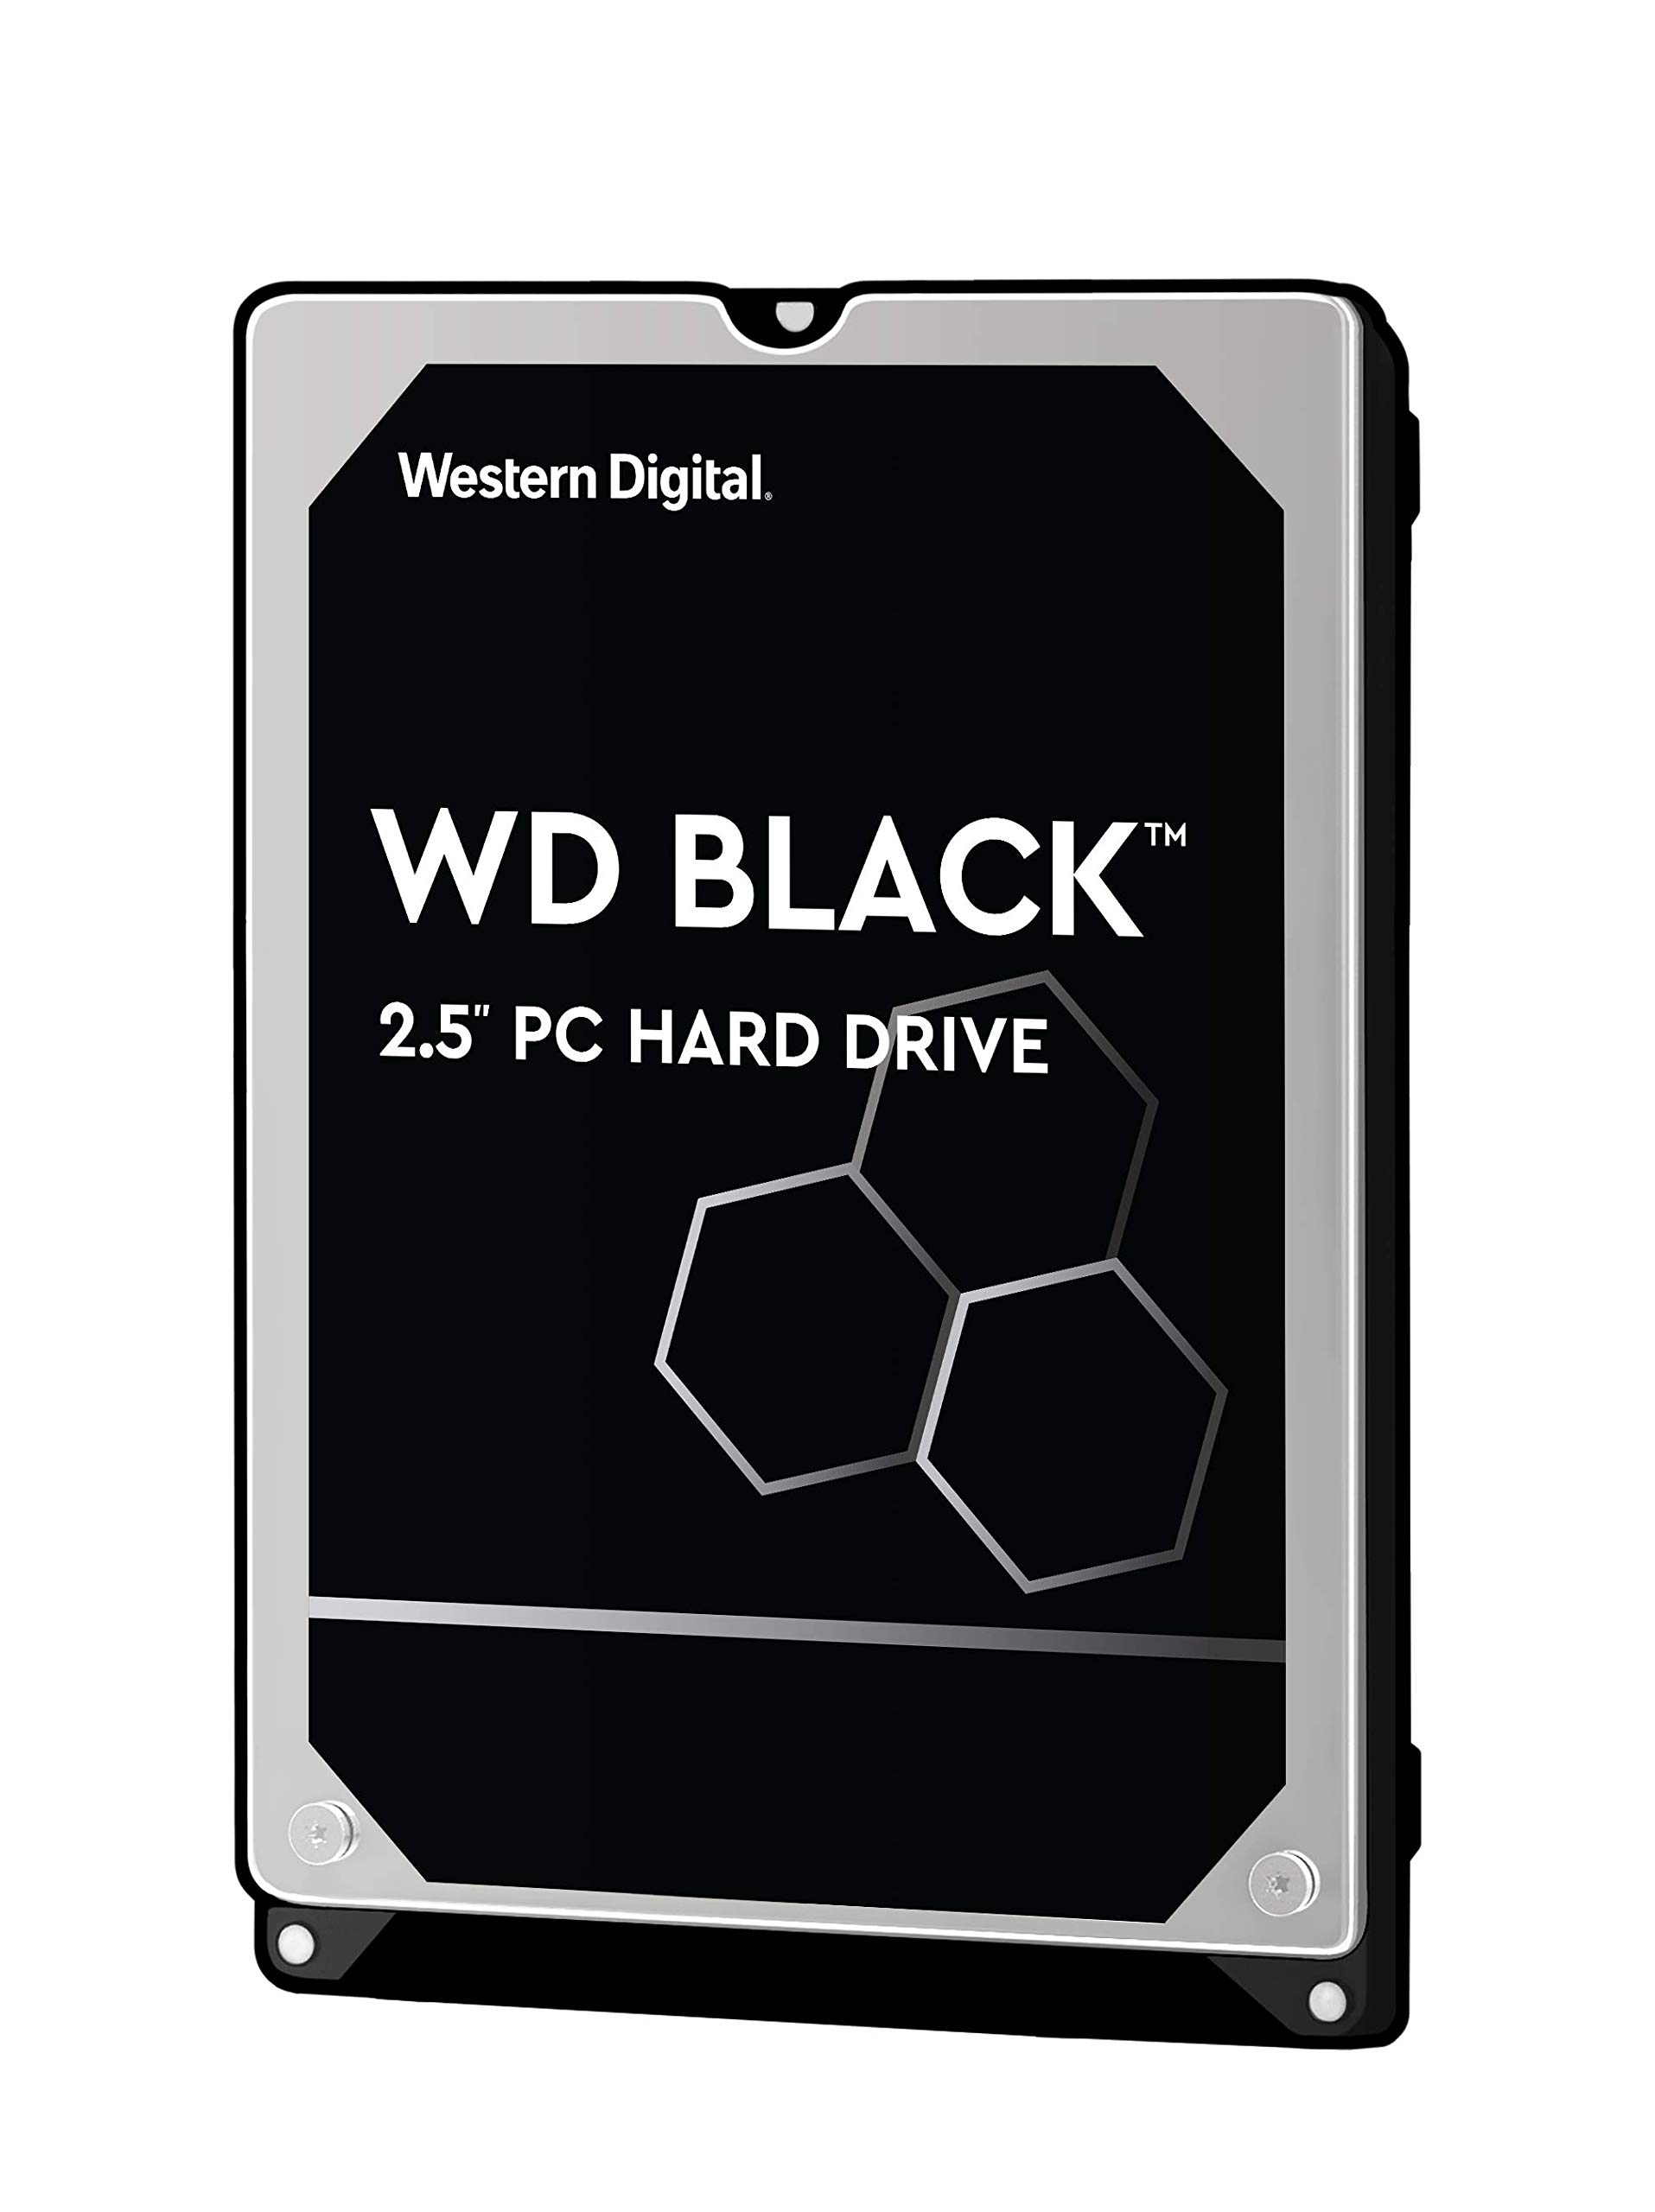 WD Black 500GB Performance Mobile Hard Disk Drive - 7200 RPM SATA 6 Gb/s 32MB Cache 7 MM 2.5 Inch - WD5000LPLX by Western Digital